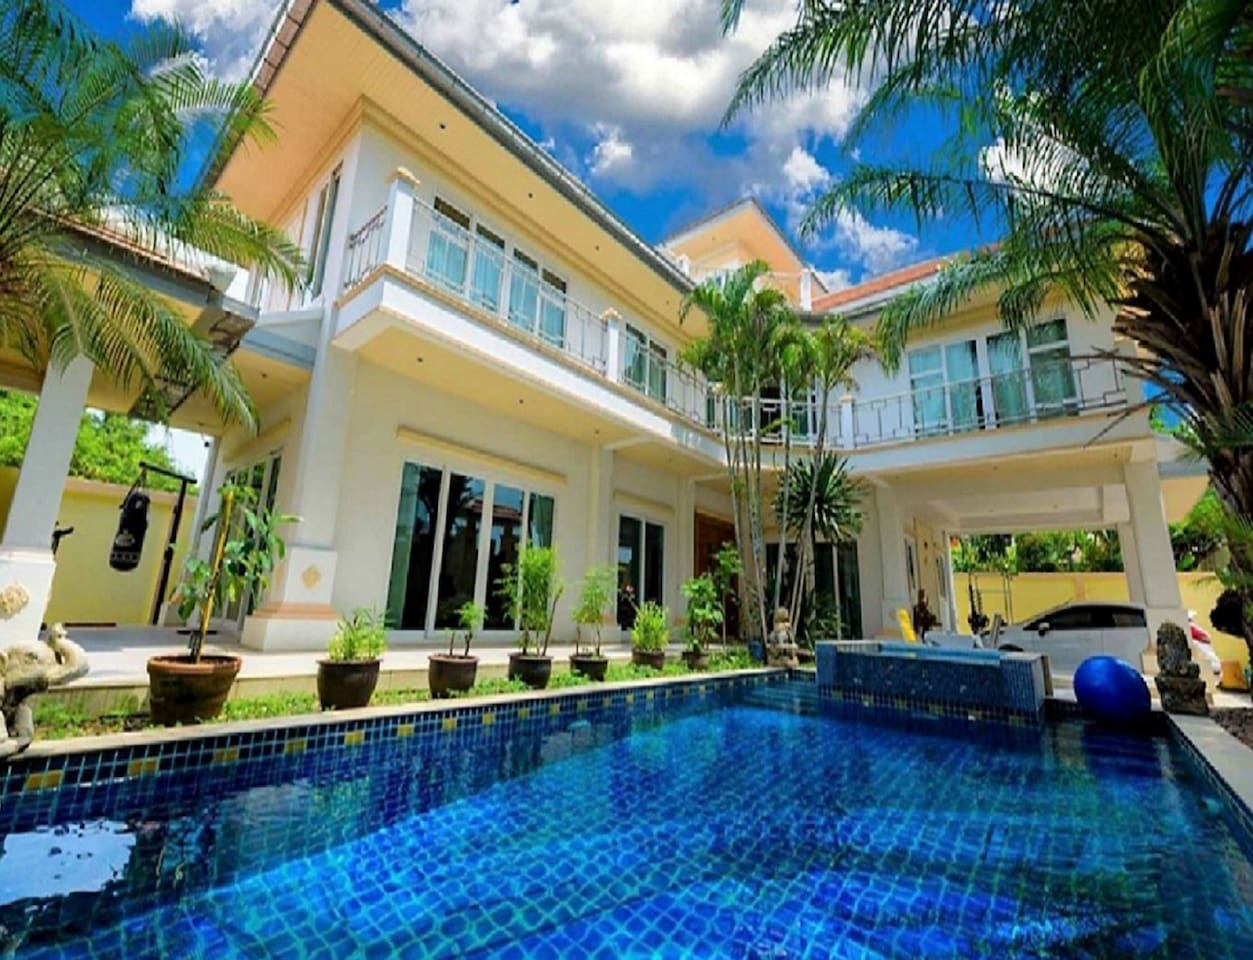 Pool Villa with Jacuzzi, Waterfall, Patio and Garden